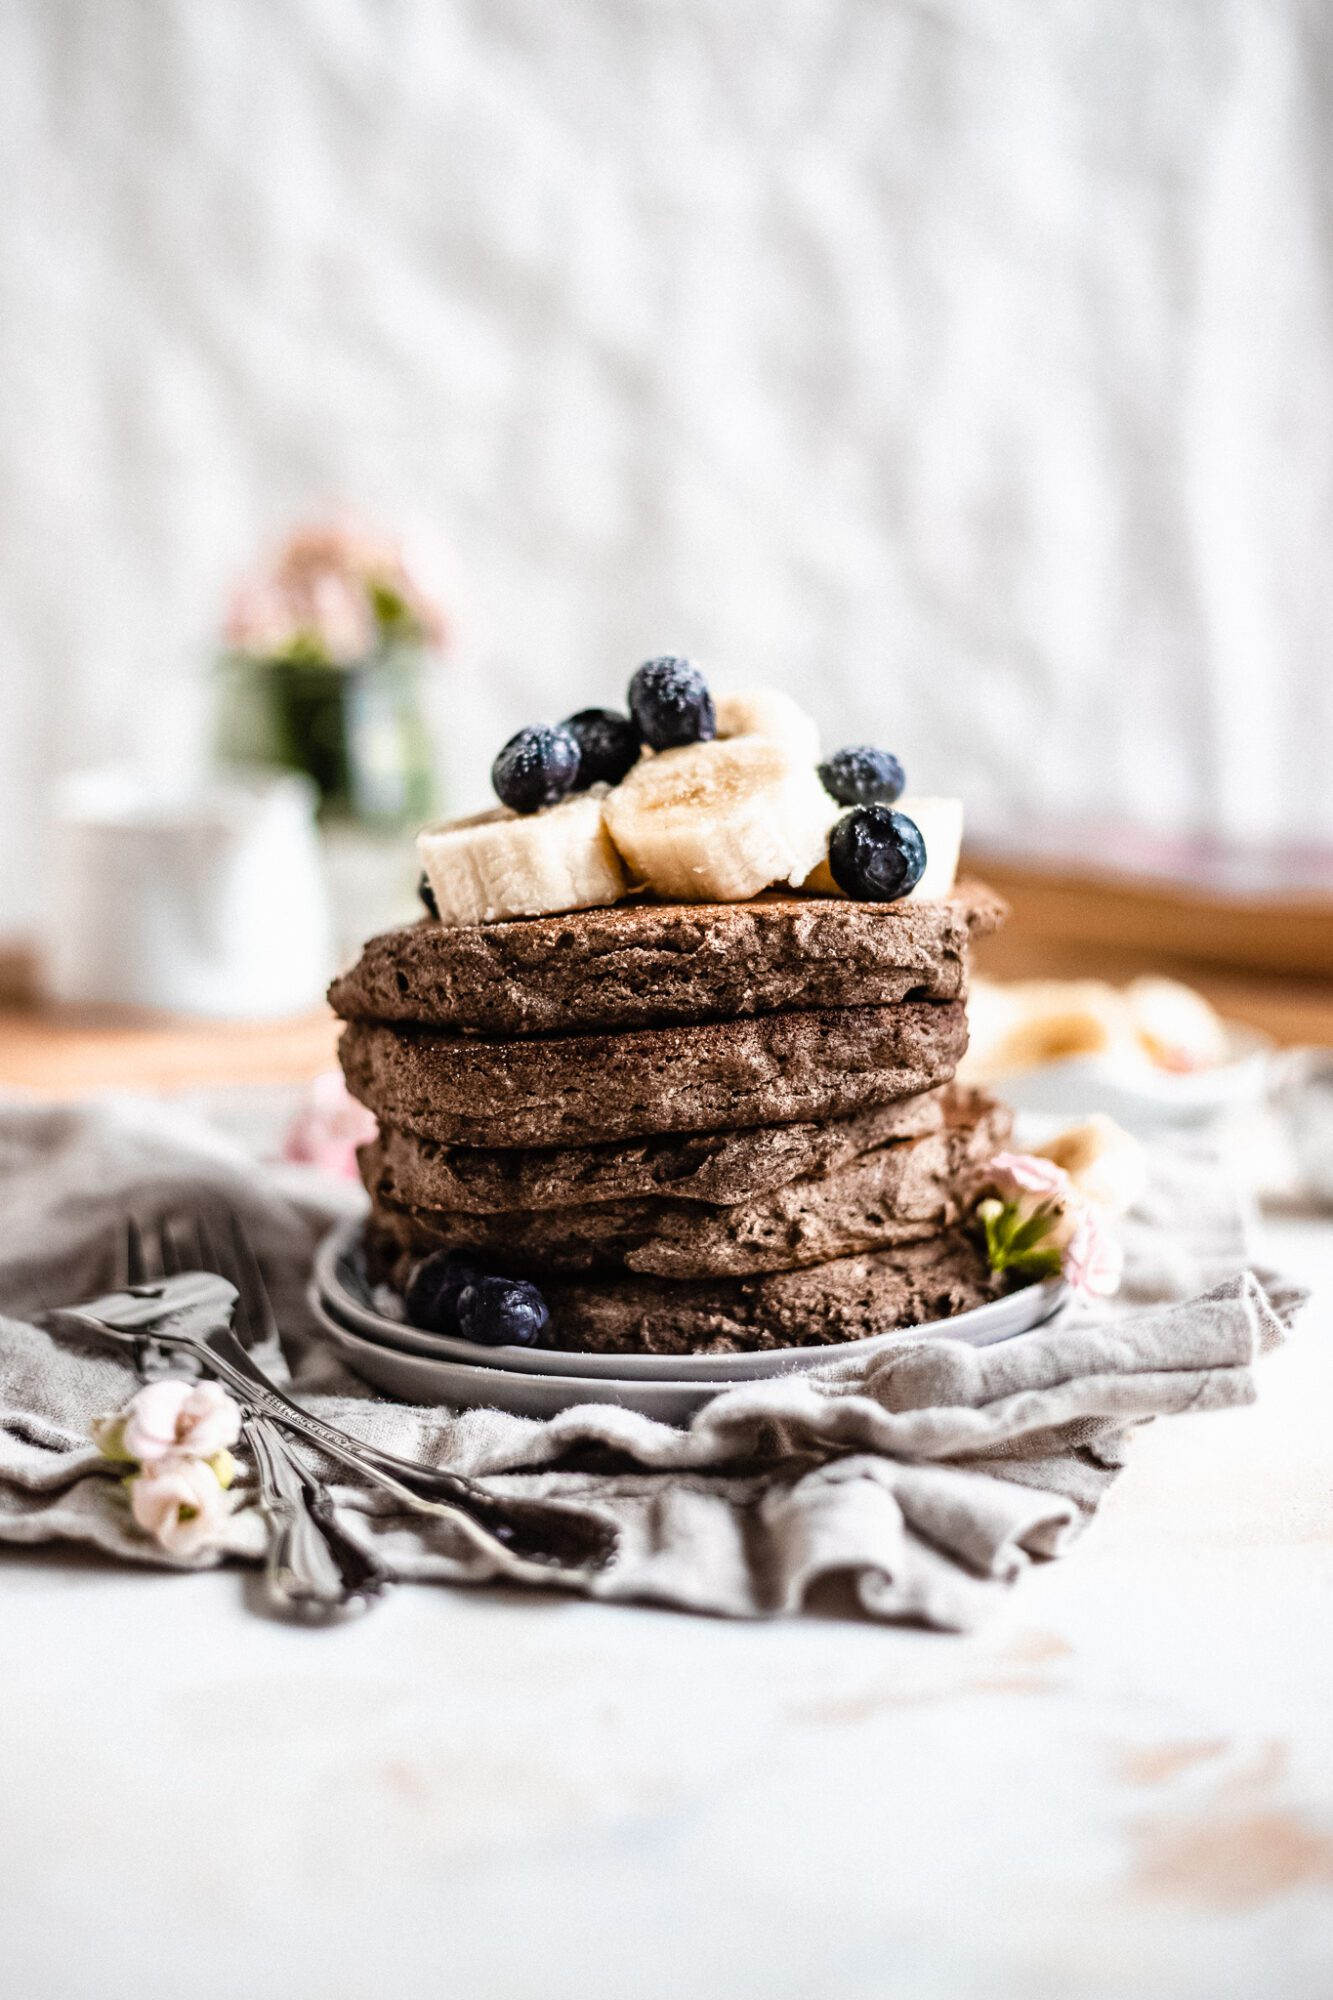 Vegan Buckwheat Pancakes Gf Df The Banana Diaries